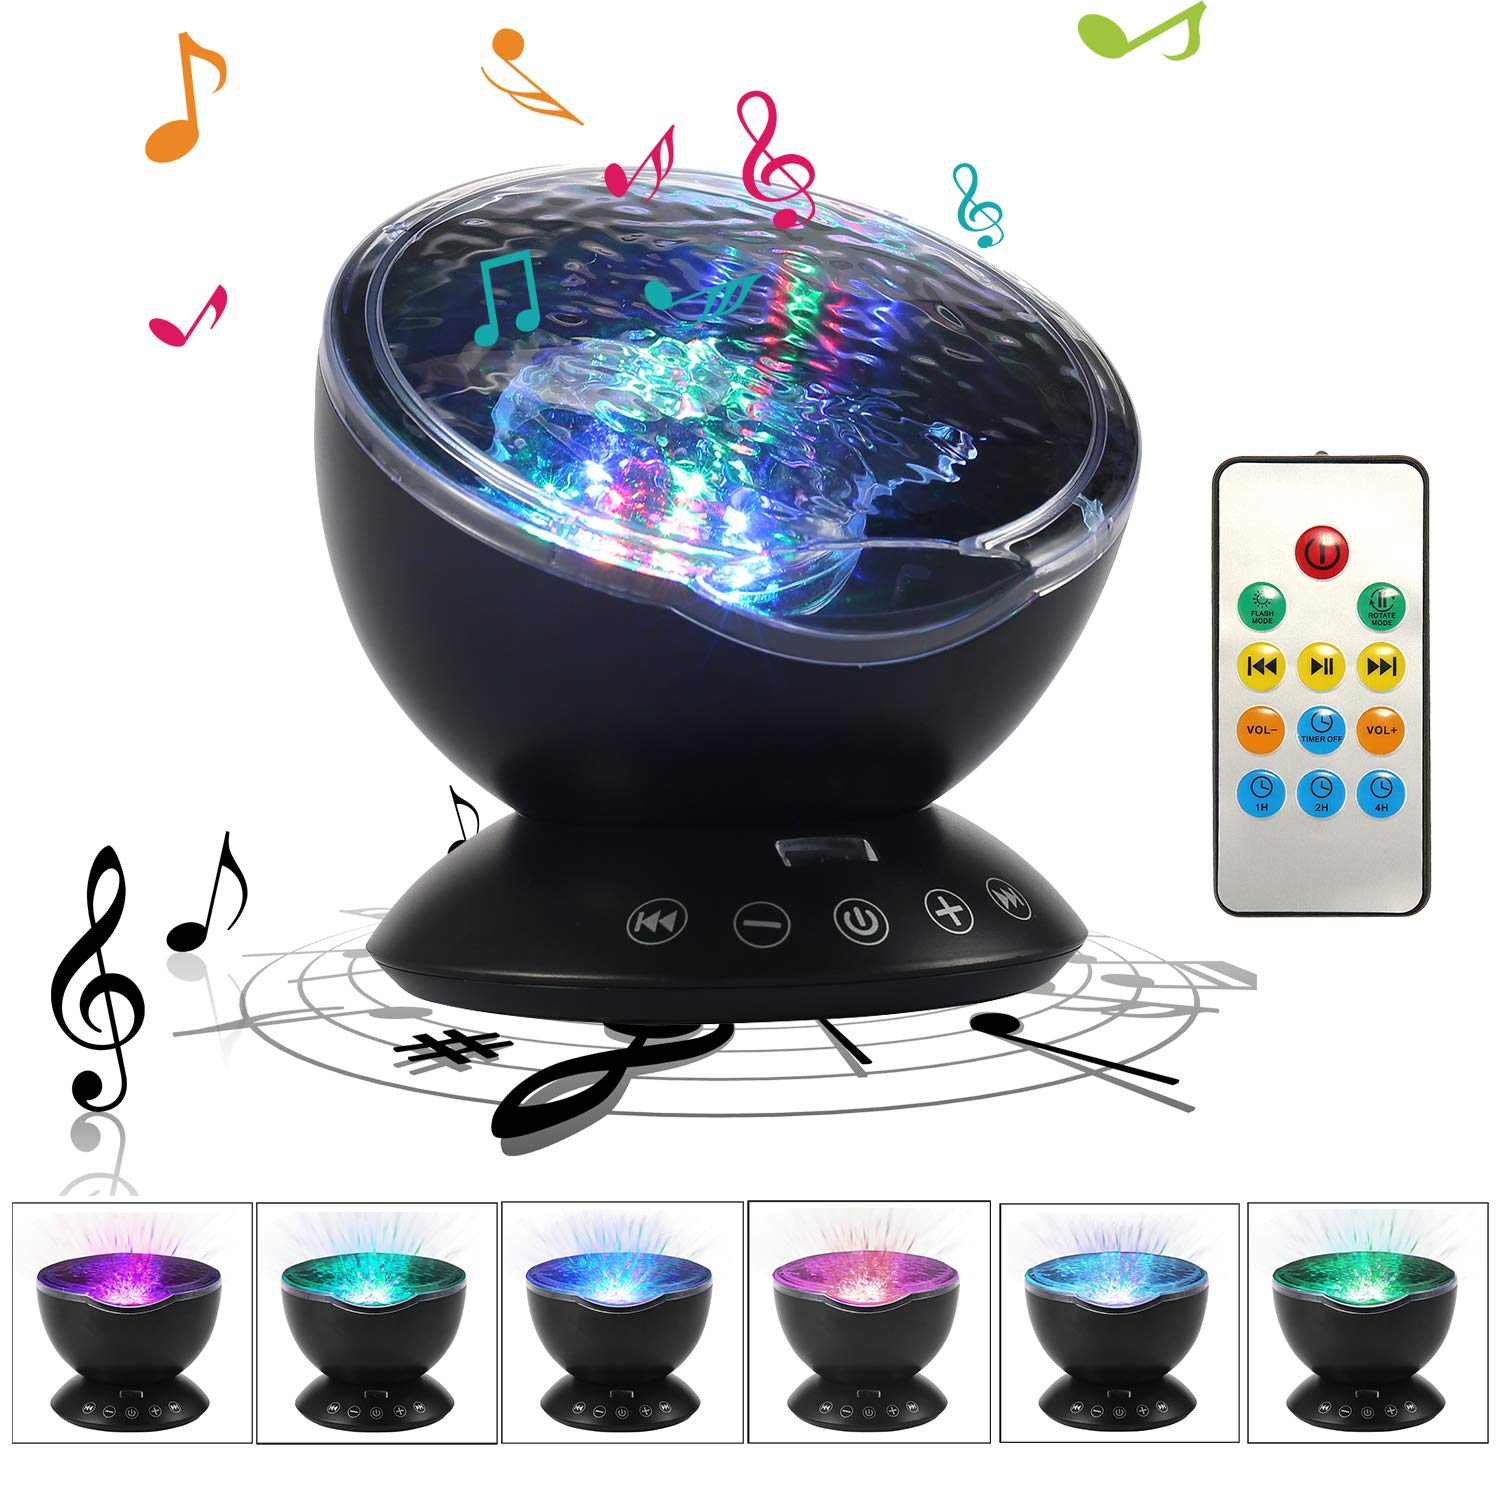 Teepao Ocean Wave Projector, 12 LED Remote Control Undersea Night Light Projector -7 Color Changing Music Player with AUX Interface Star Projector Night Light for Kids